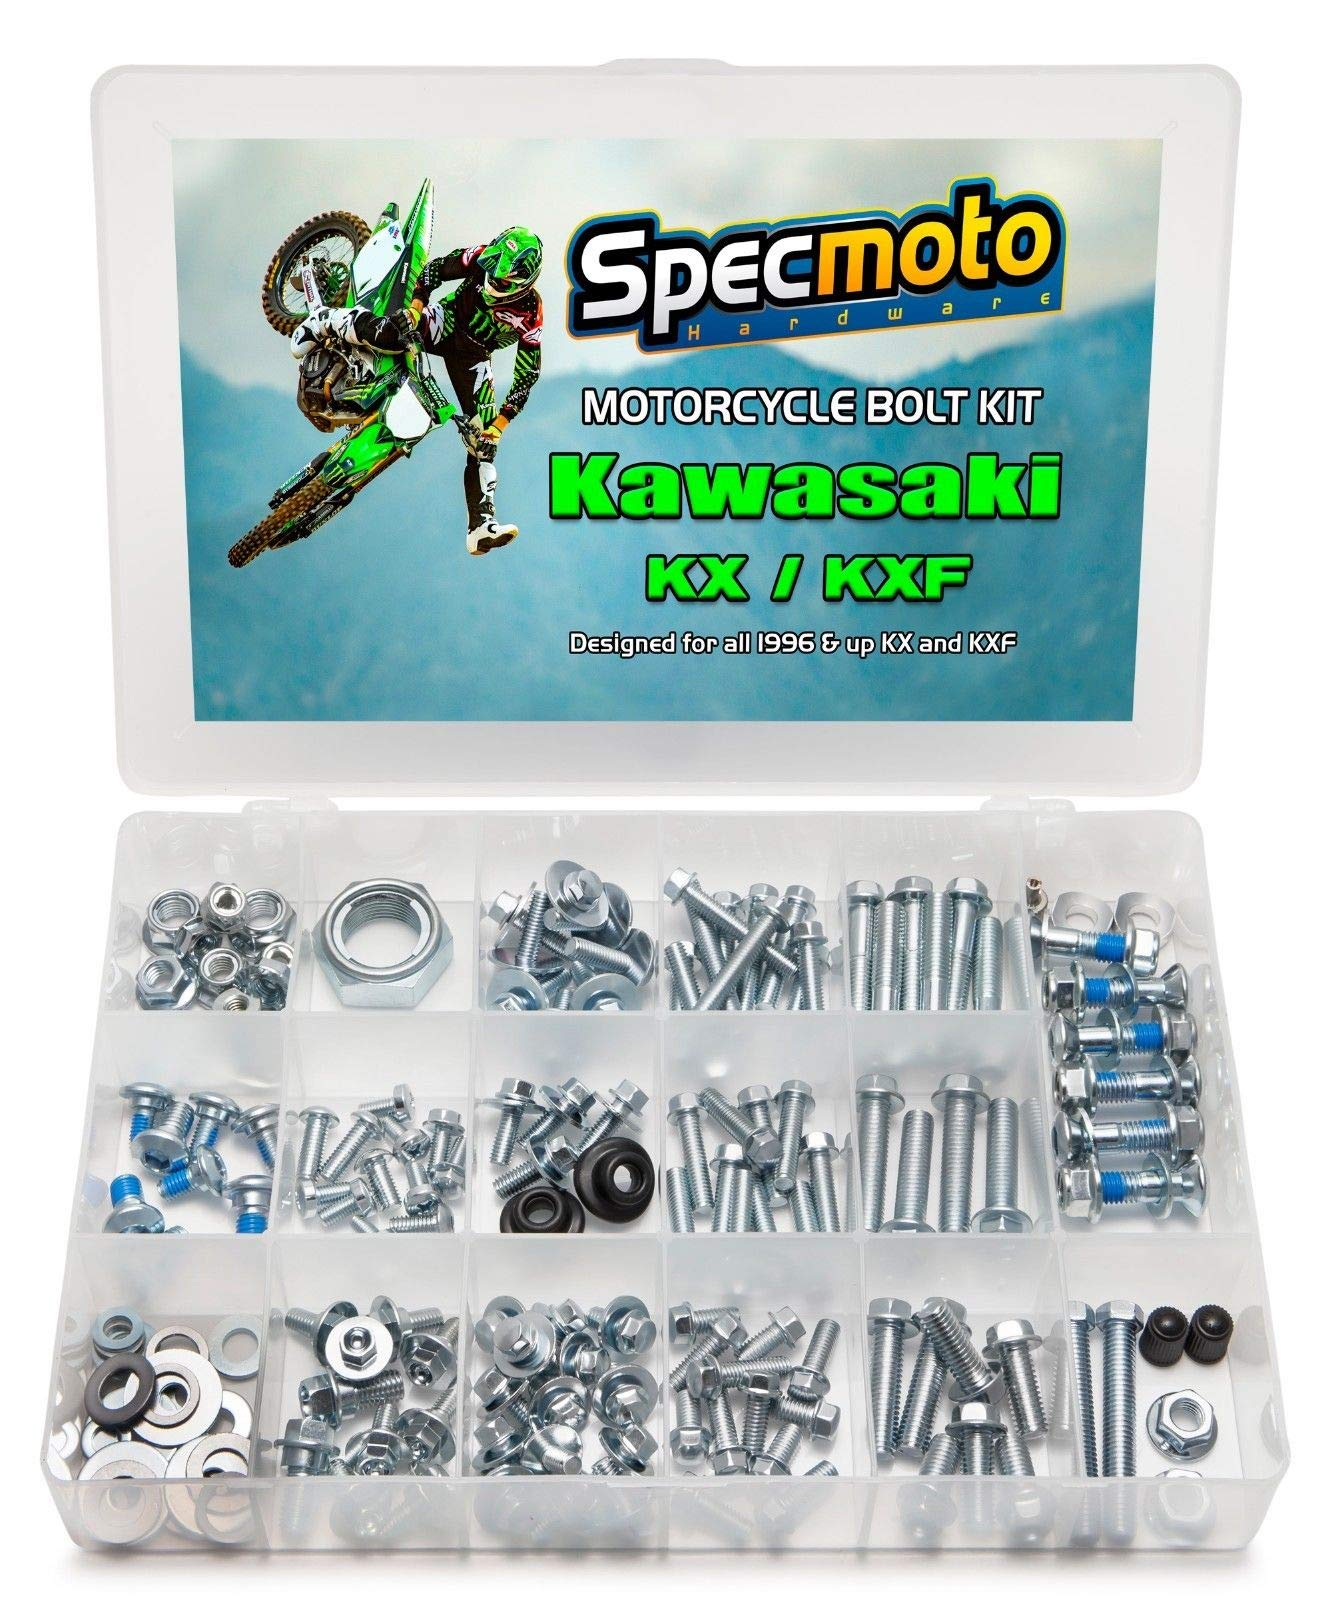 Specmoto Hardware Kawasaki Bolt Kit: KX/KXF Model Series Dirt Bike (1996-present)